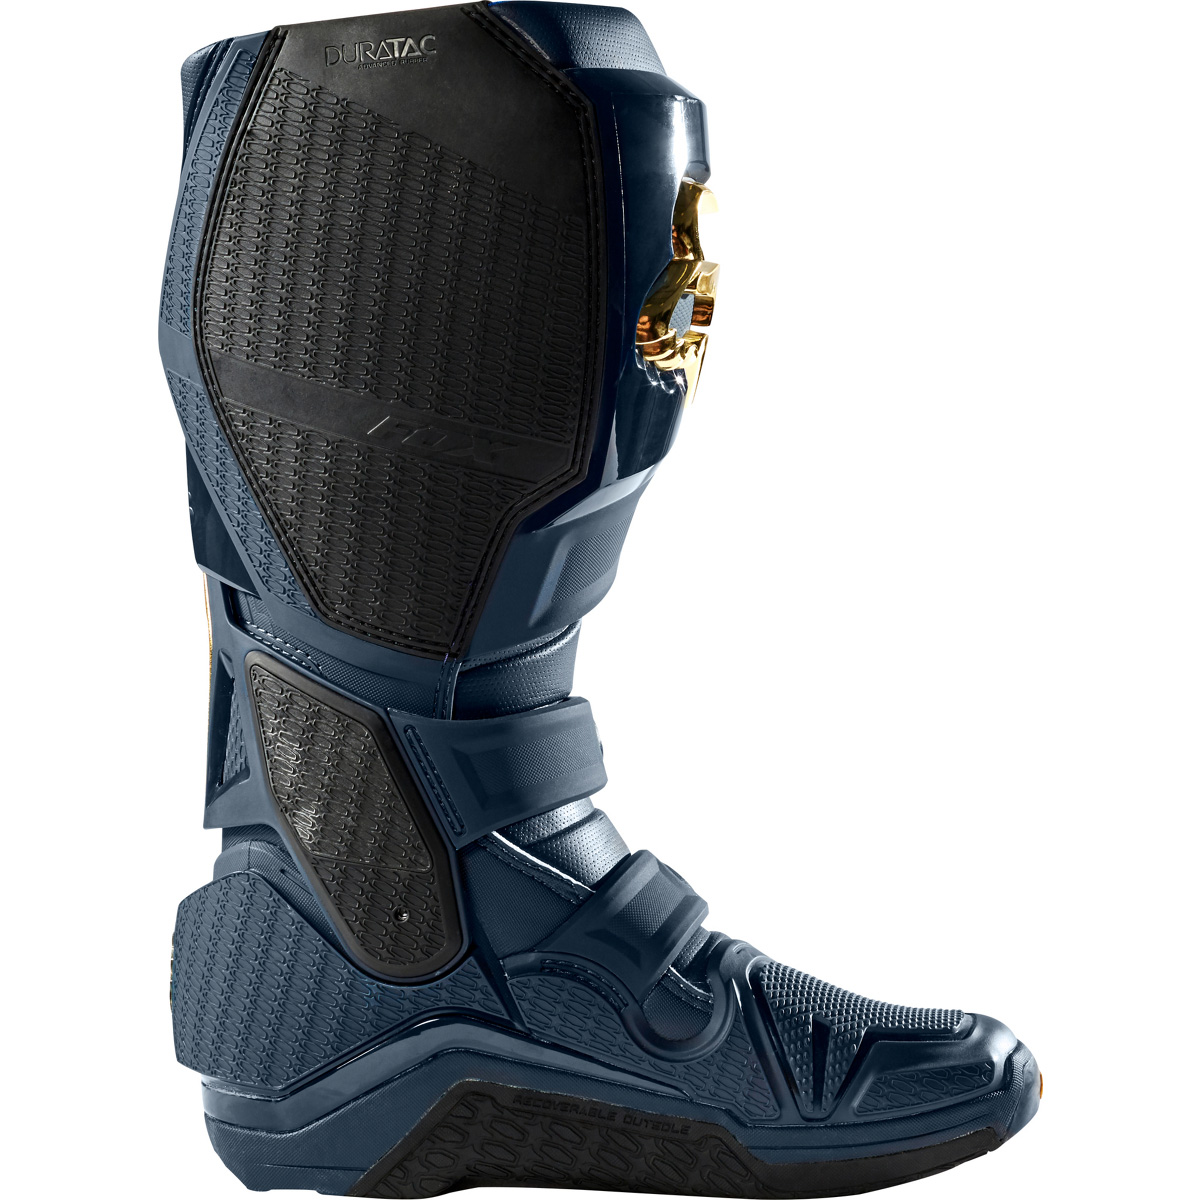 24277-156 Fox Racing 2019 Instinct Limited Edition Motocross Boots Navy Gold Bottes Offraod Stiefel Enduro Crosslaarzen